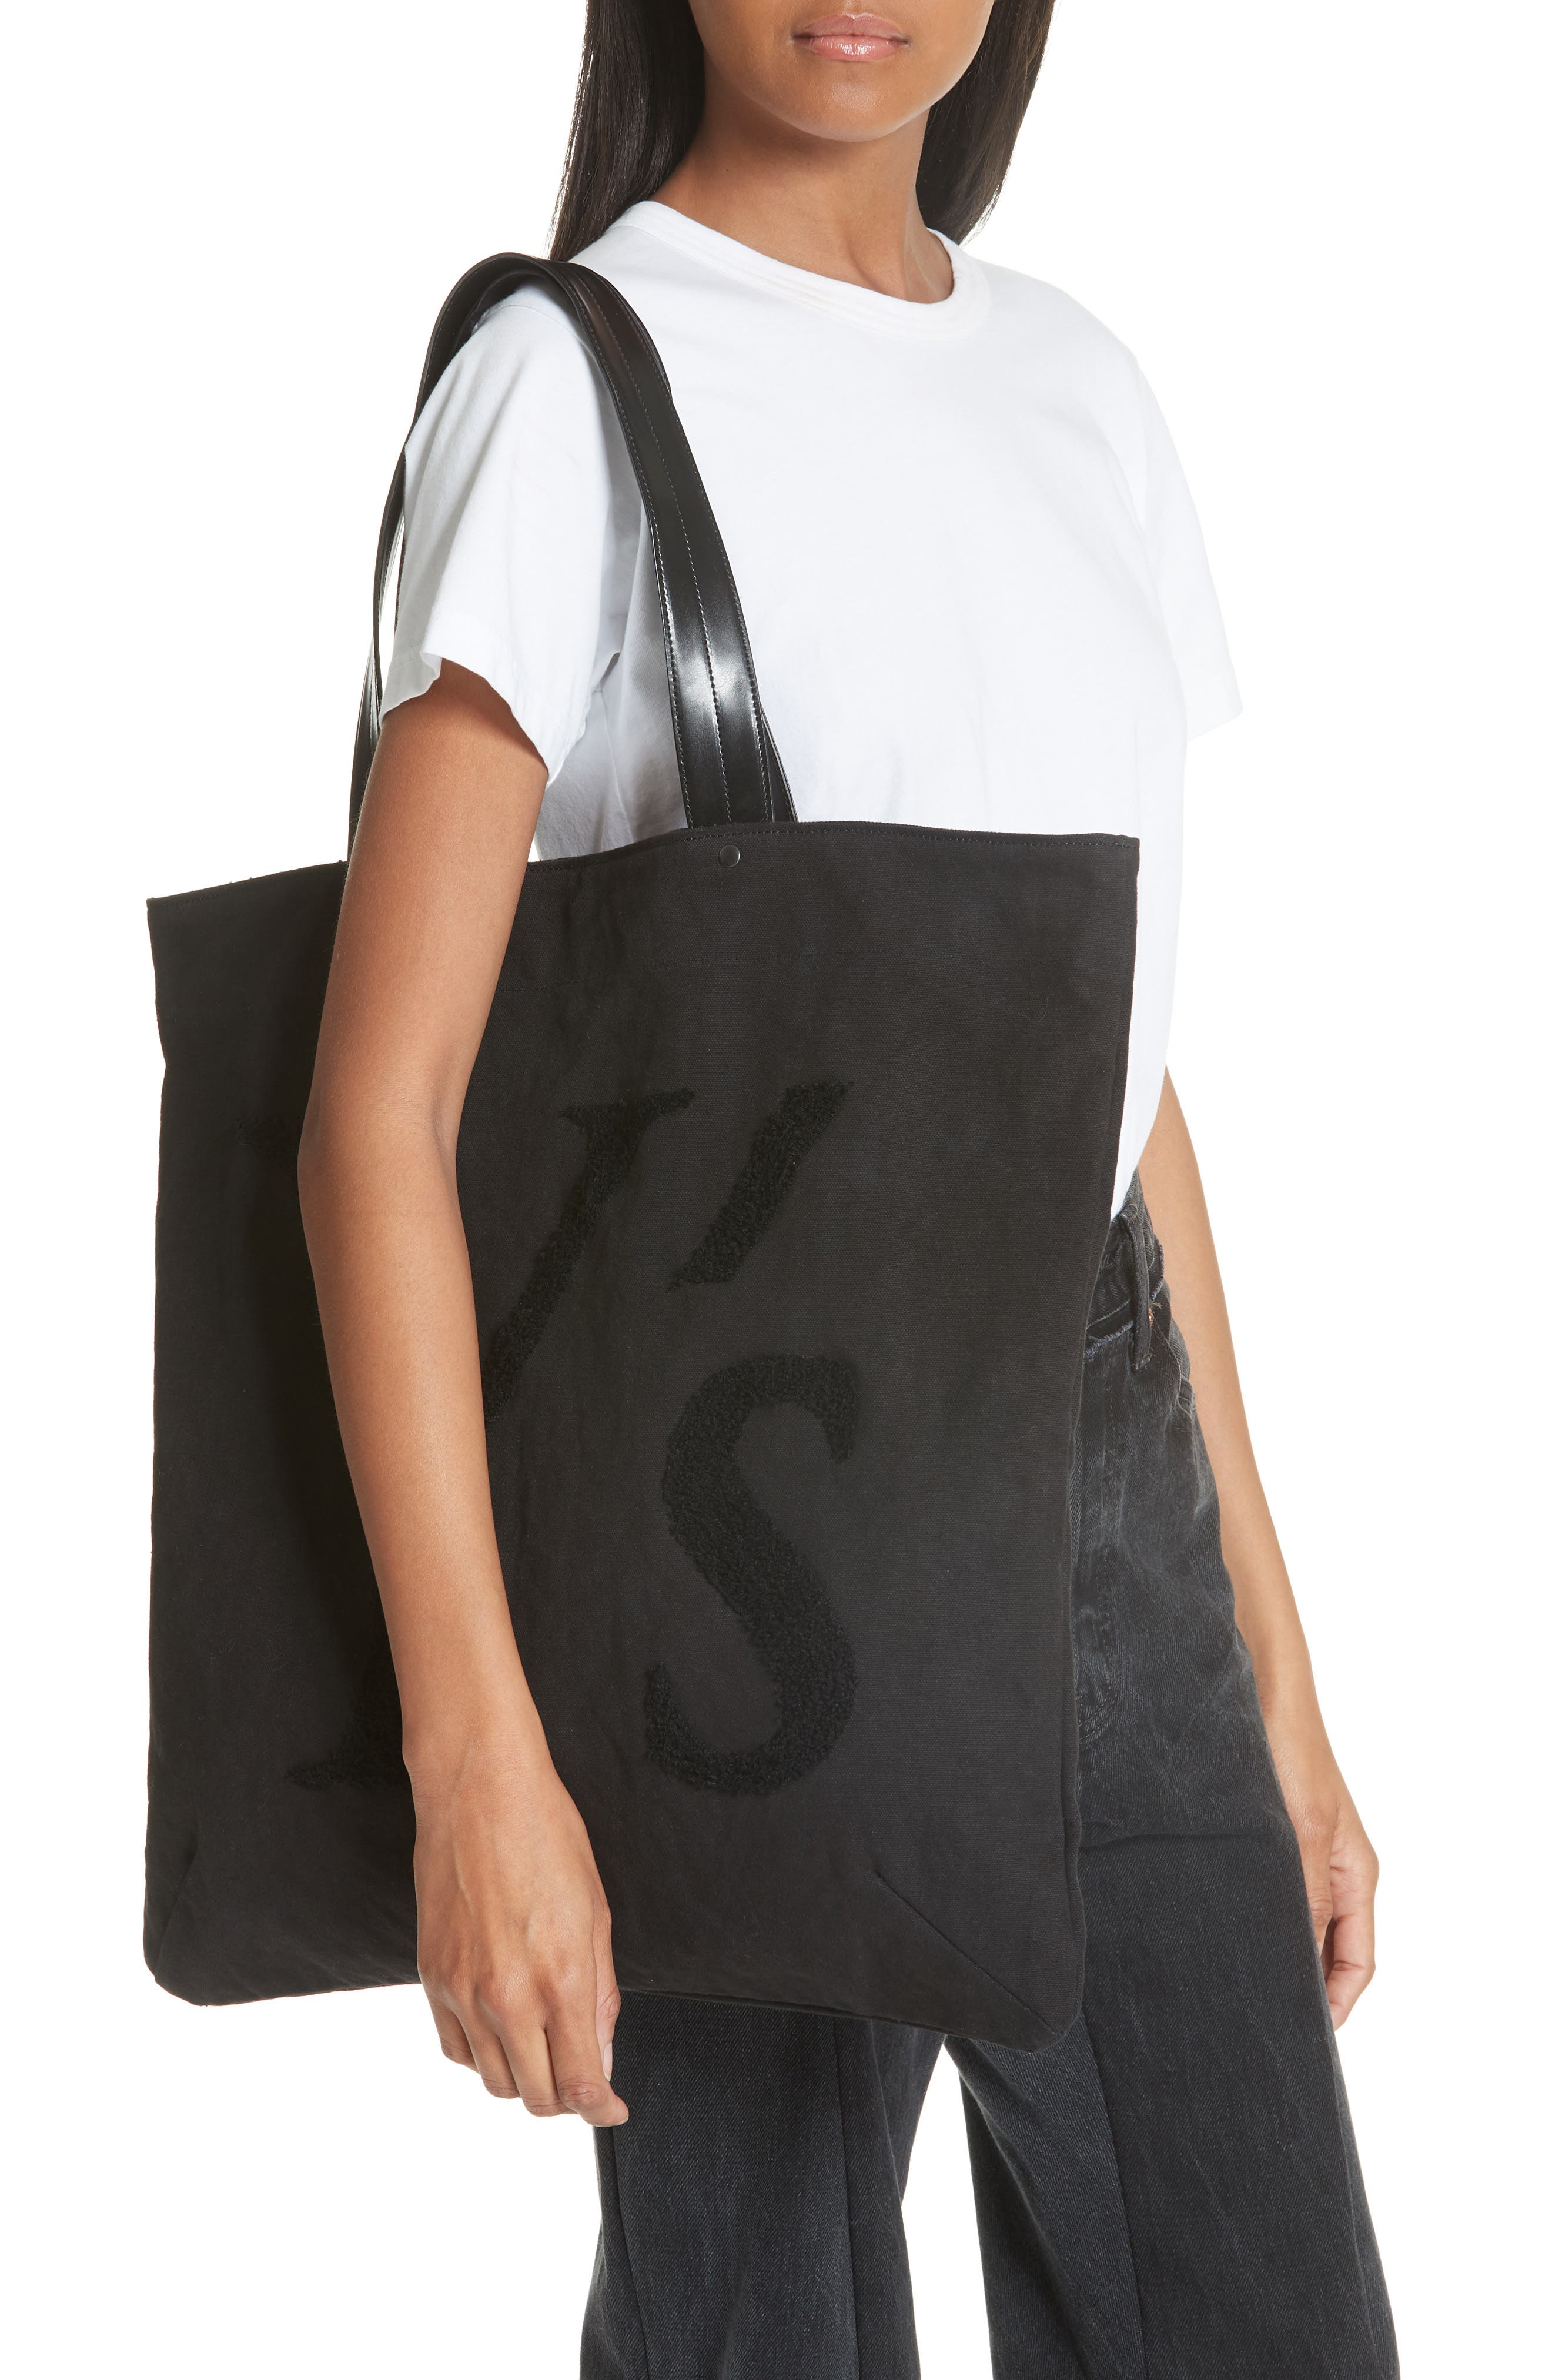 Ys by Yohji Yamamoto Embroidered Canvas Tote Bag,                             Alternate thumbnail 2, color,                             001